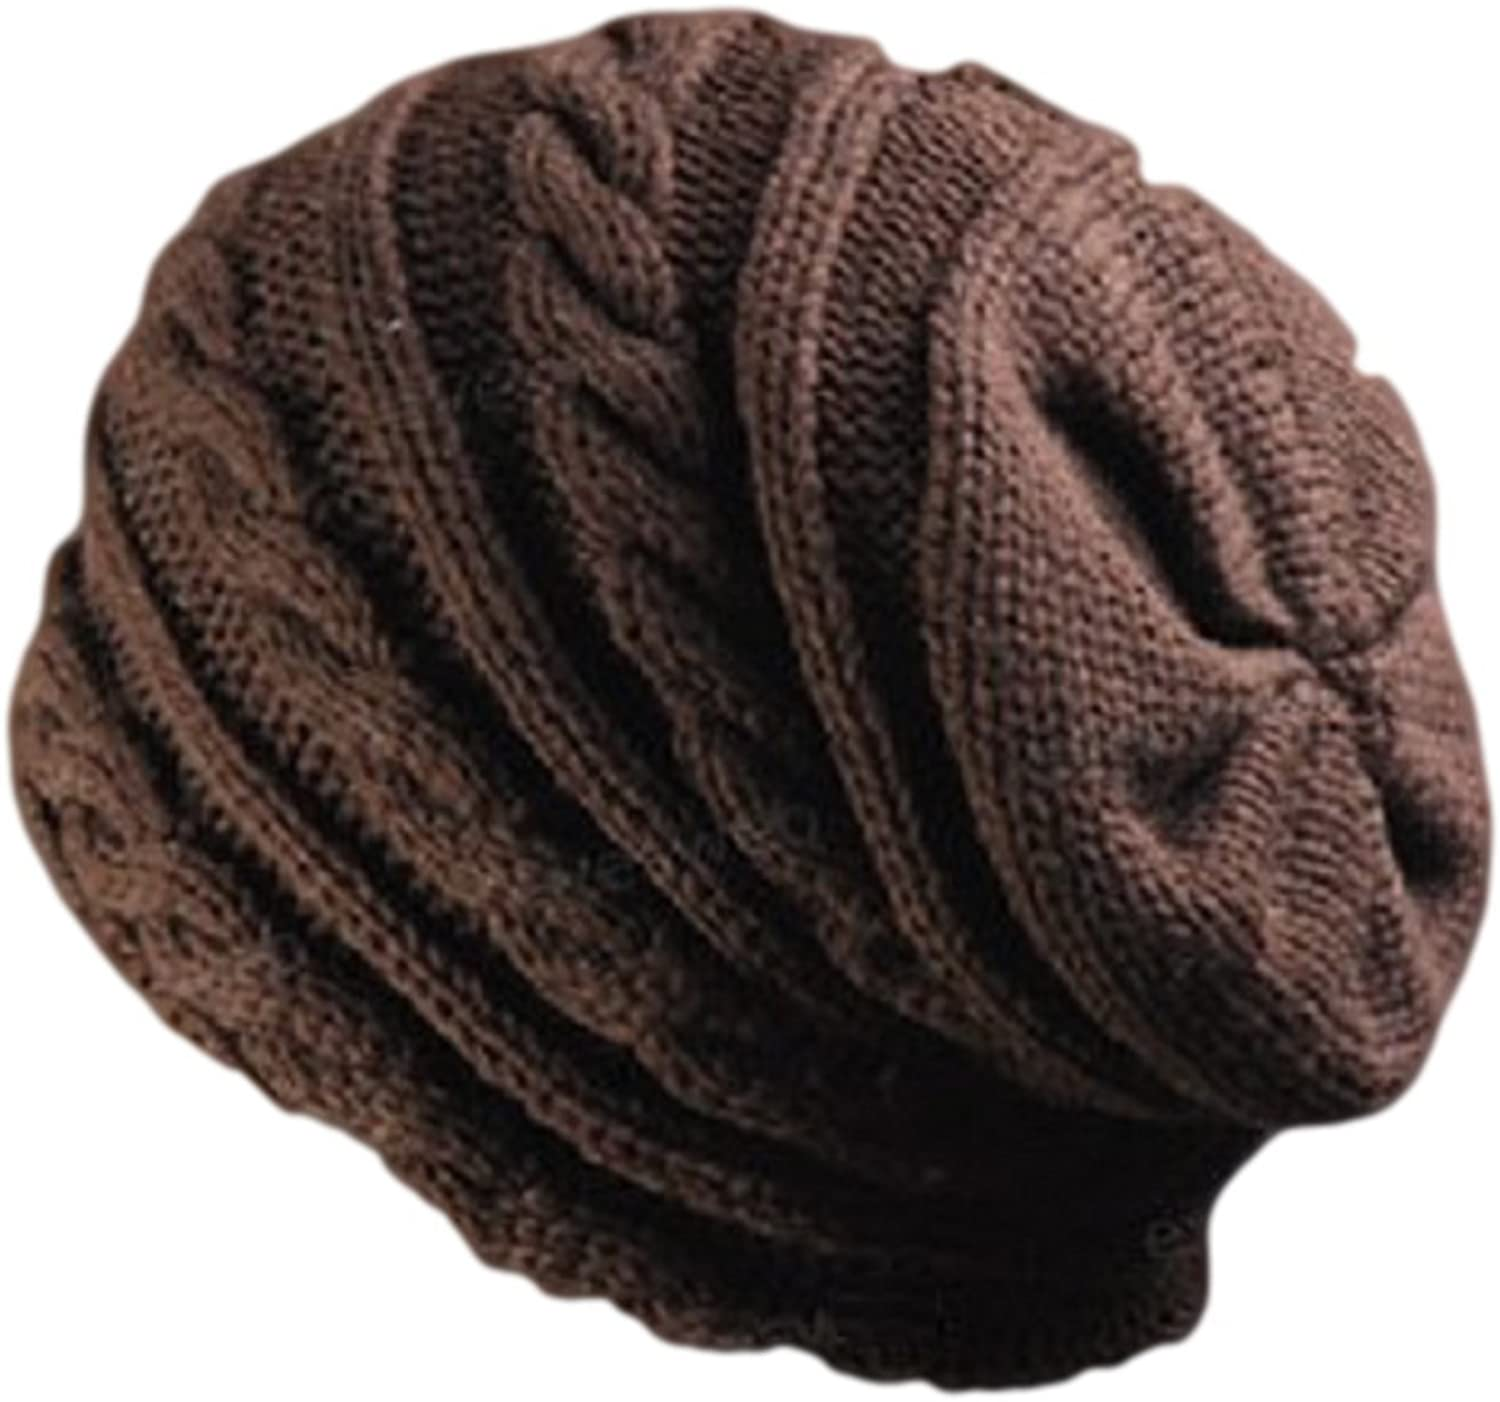 Unisex Oversized Knit Baggy Beanie Hat Cap Cable Knit Hat (Cable-Hat-Brown)